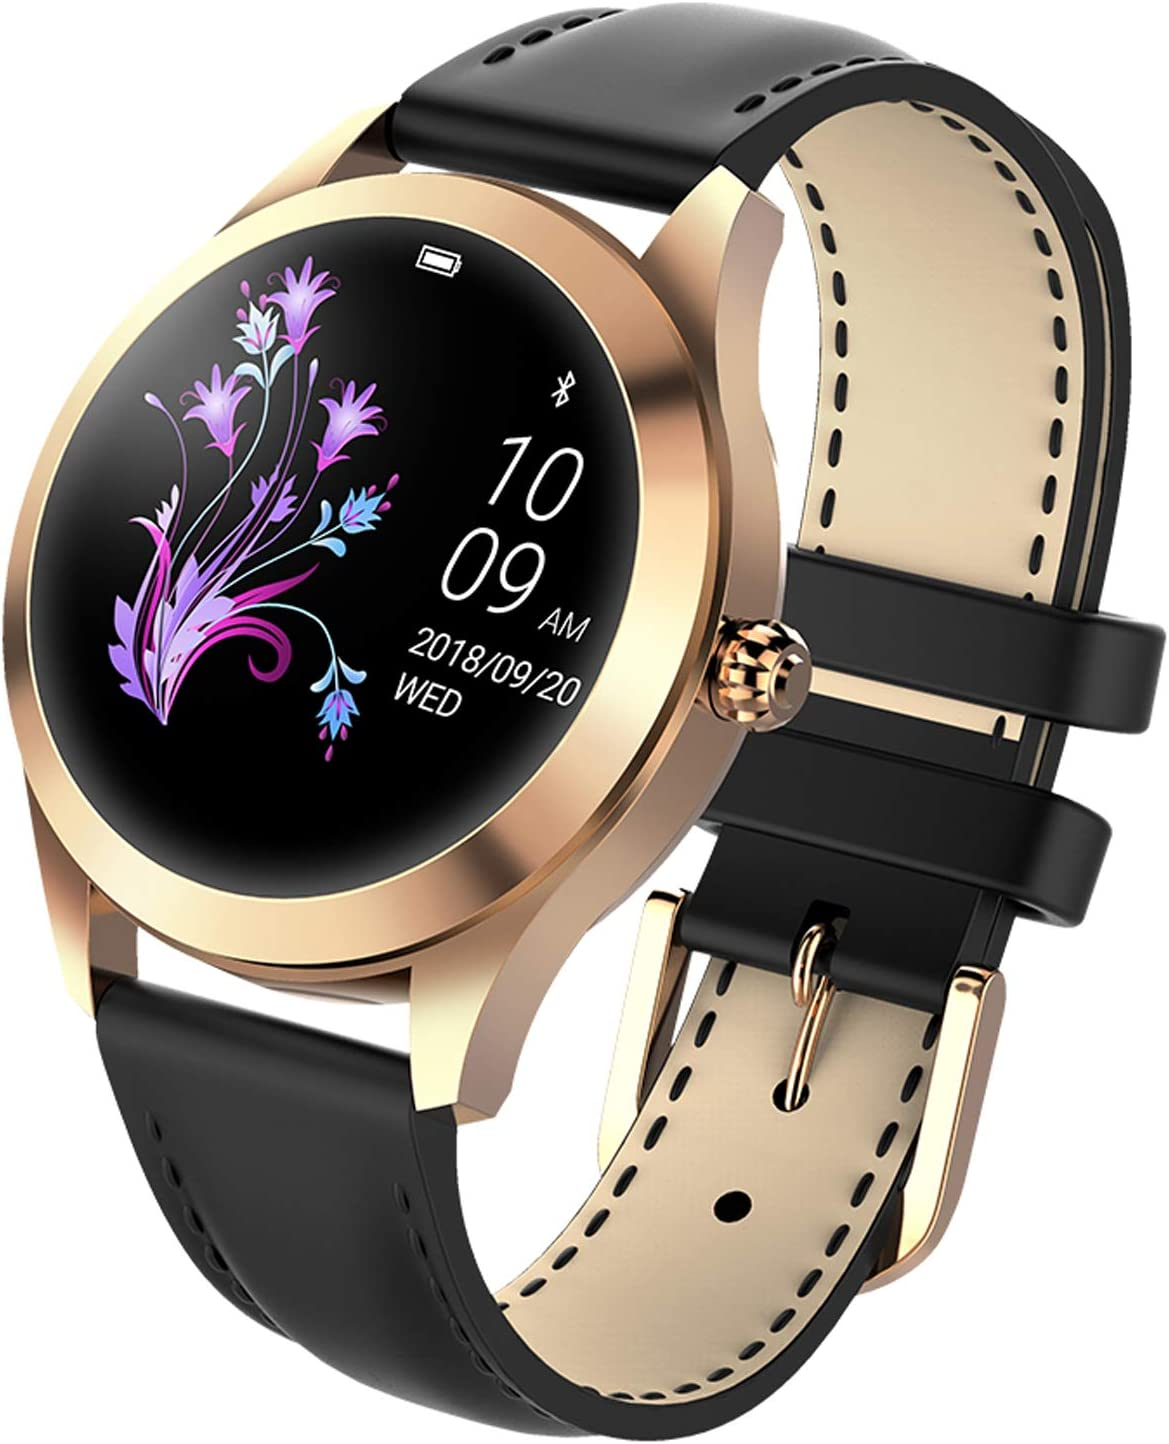 findtime Bluetooth Smartwatch for Women Calorie Counter IP68 Waterproof Sleep Monitoring Pedometer Activity Tracking for Women